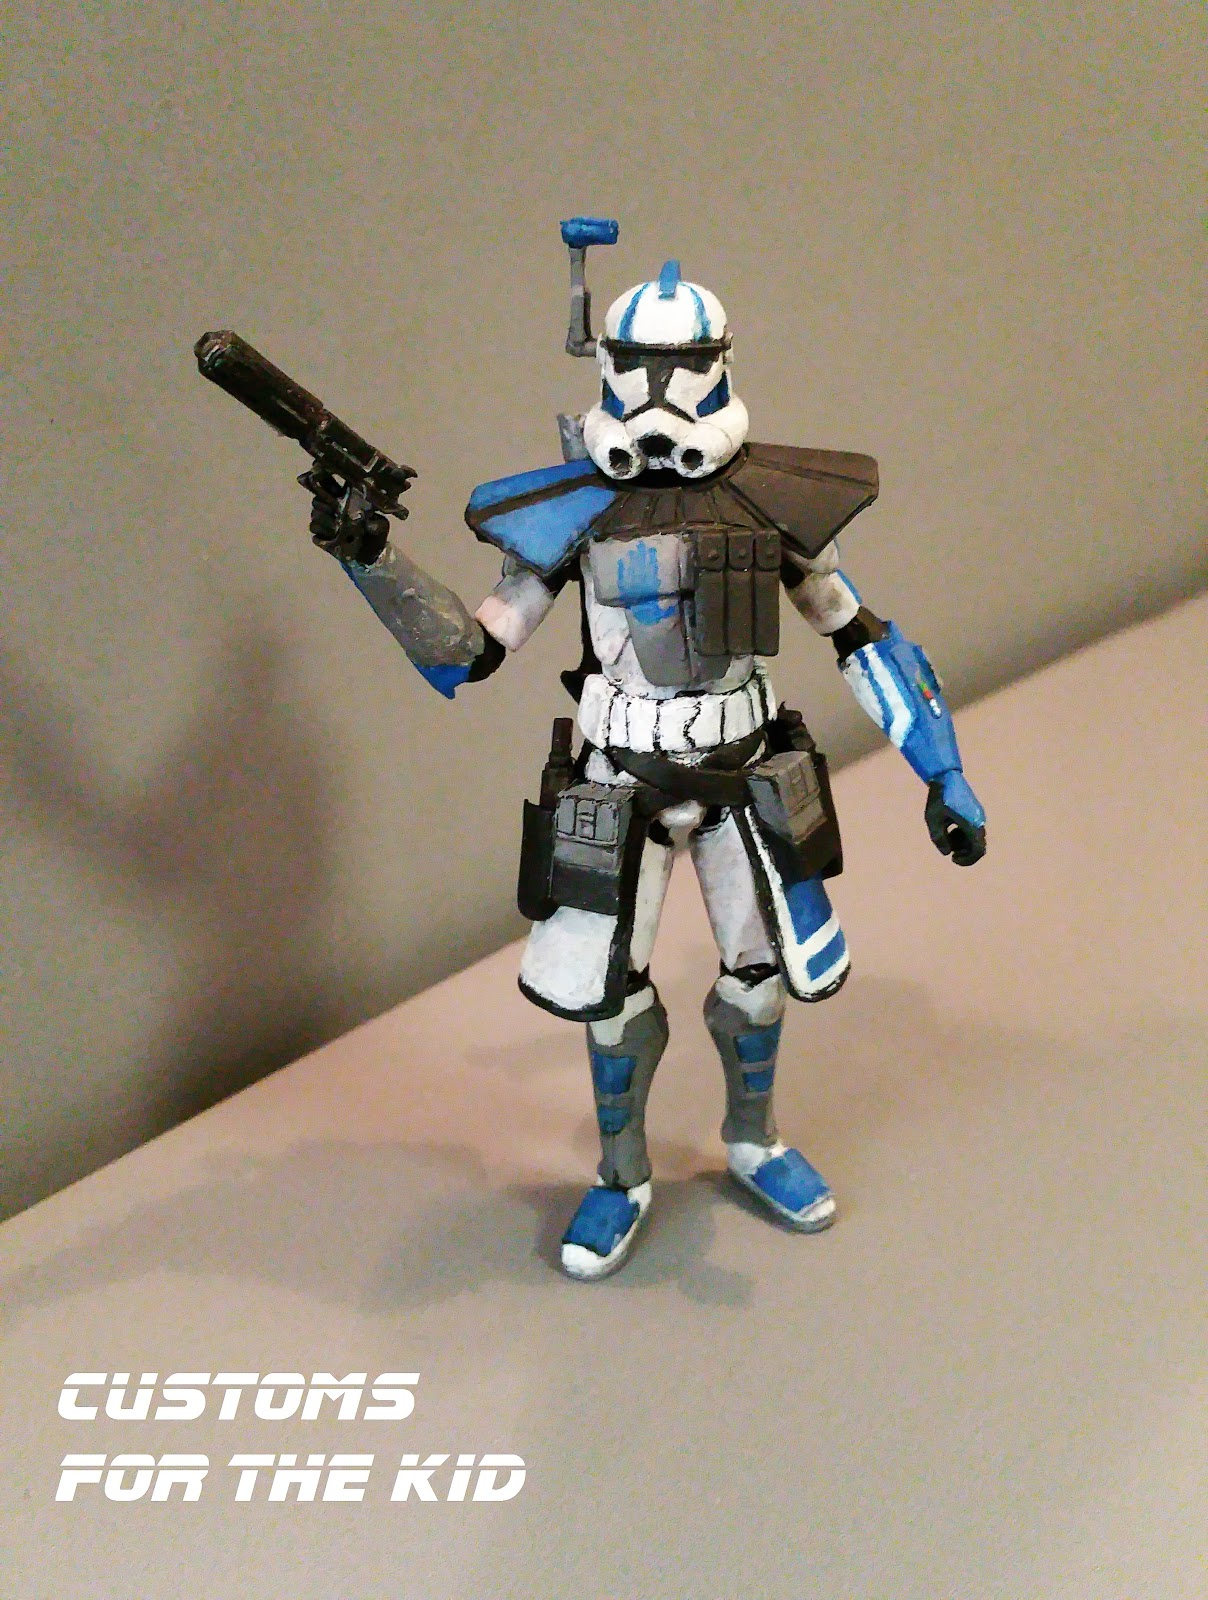 Star Wars: Customs for the Kid: